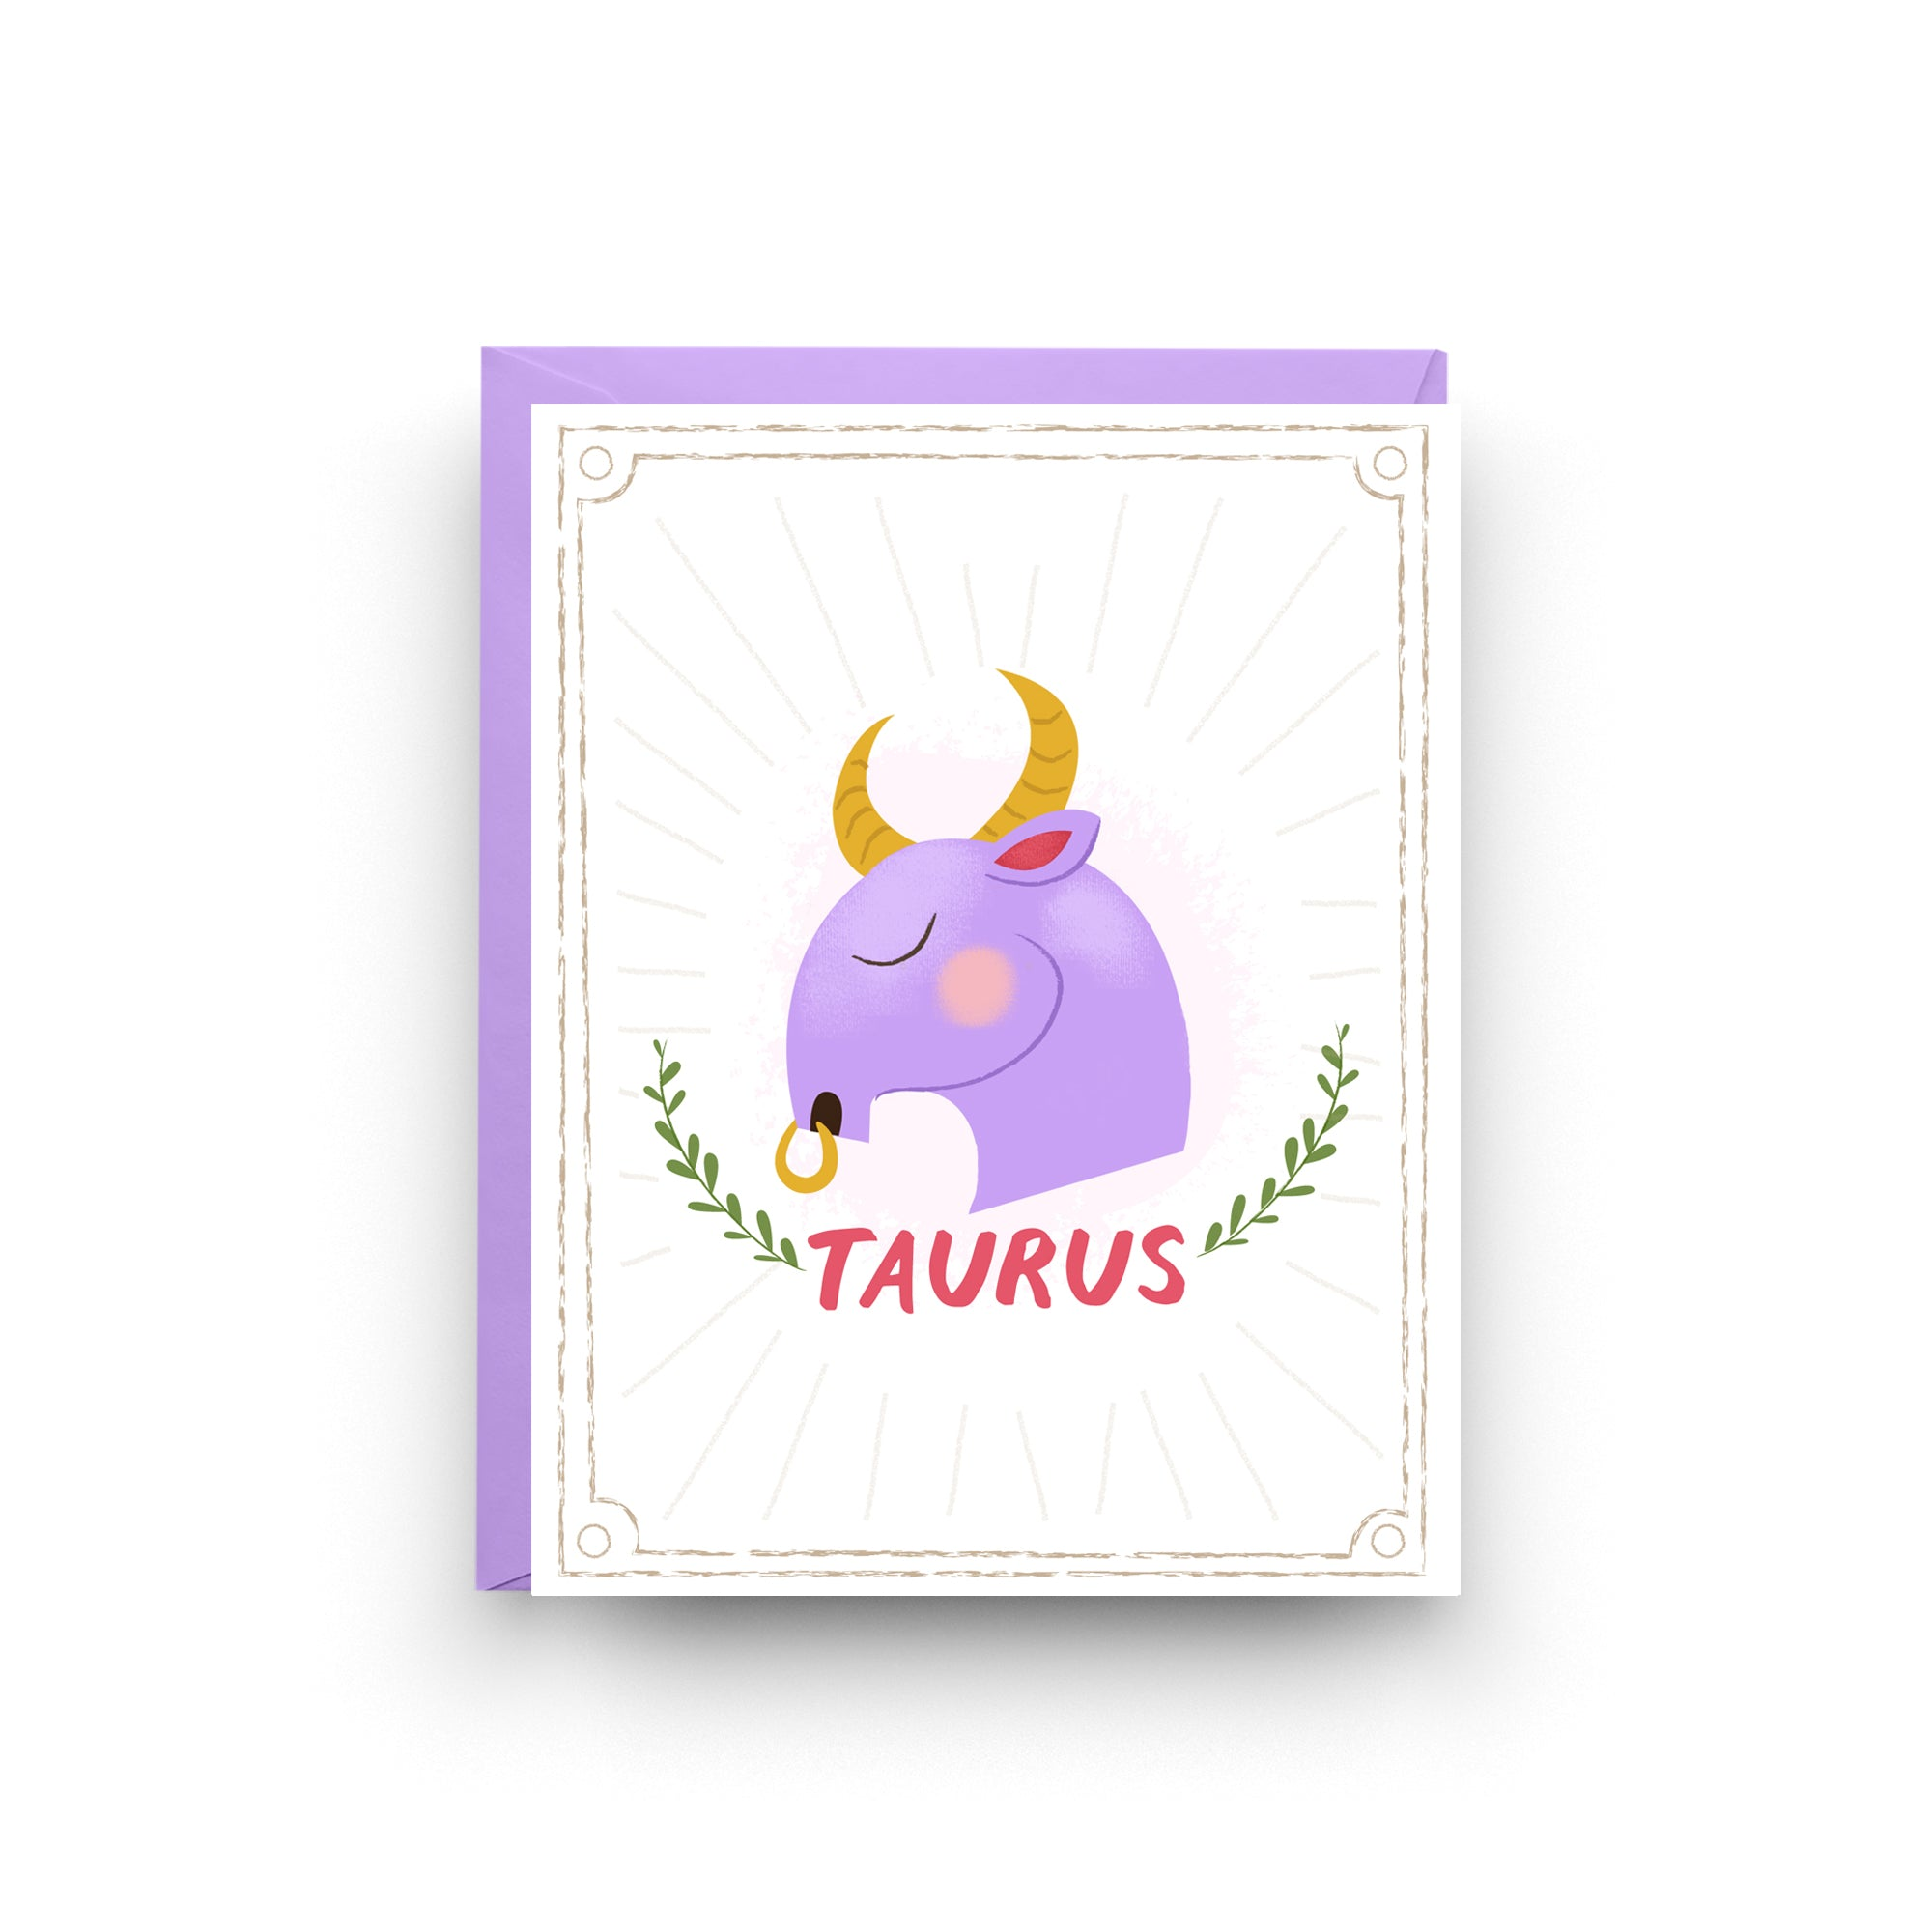 Taurus - Zodiac Birthday Card